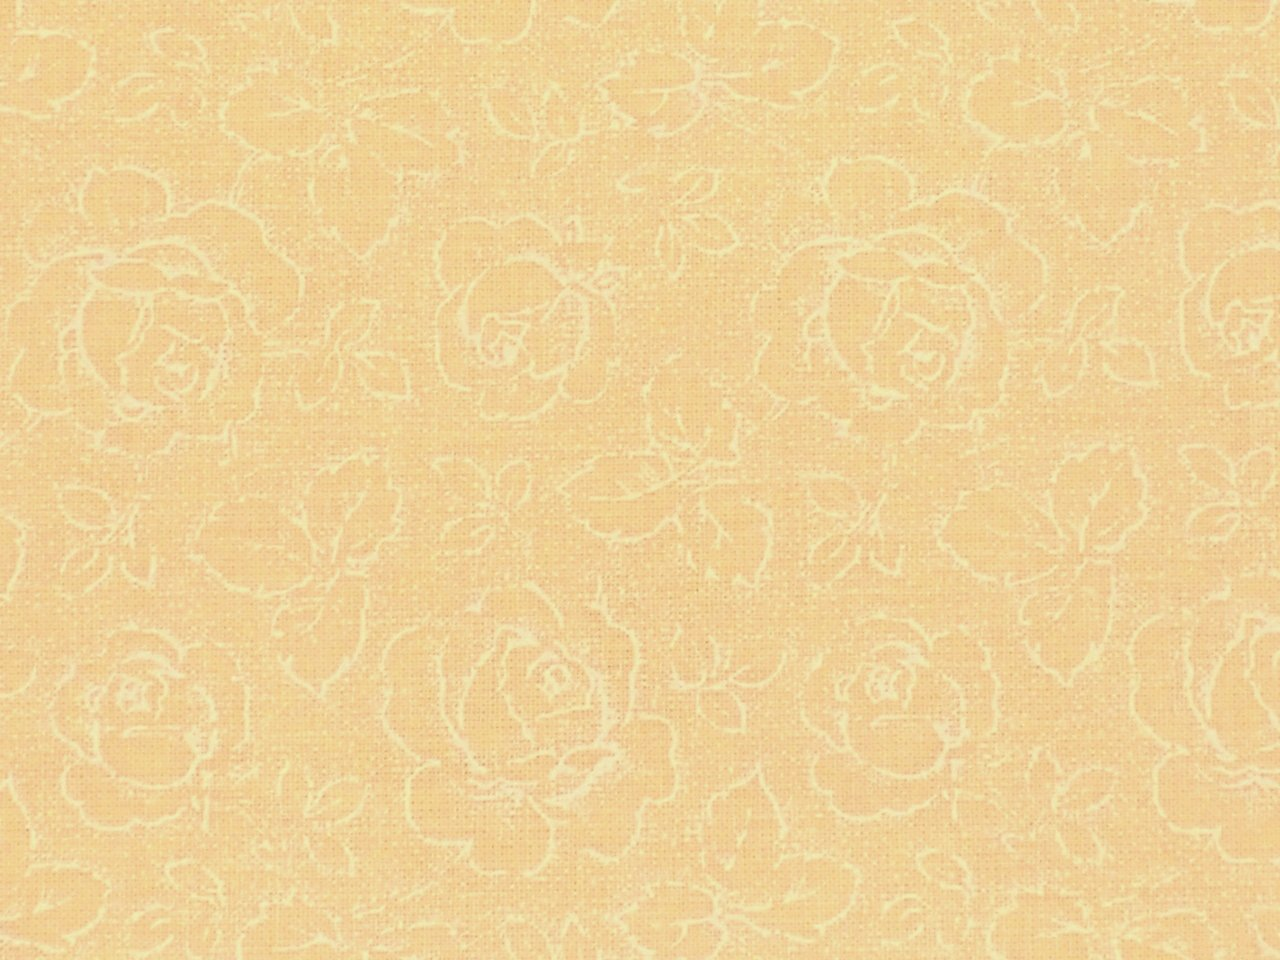 Quilt Fabrics Backing Roses on Creme